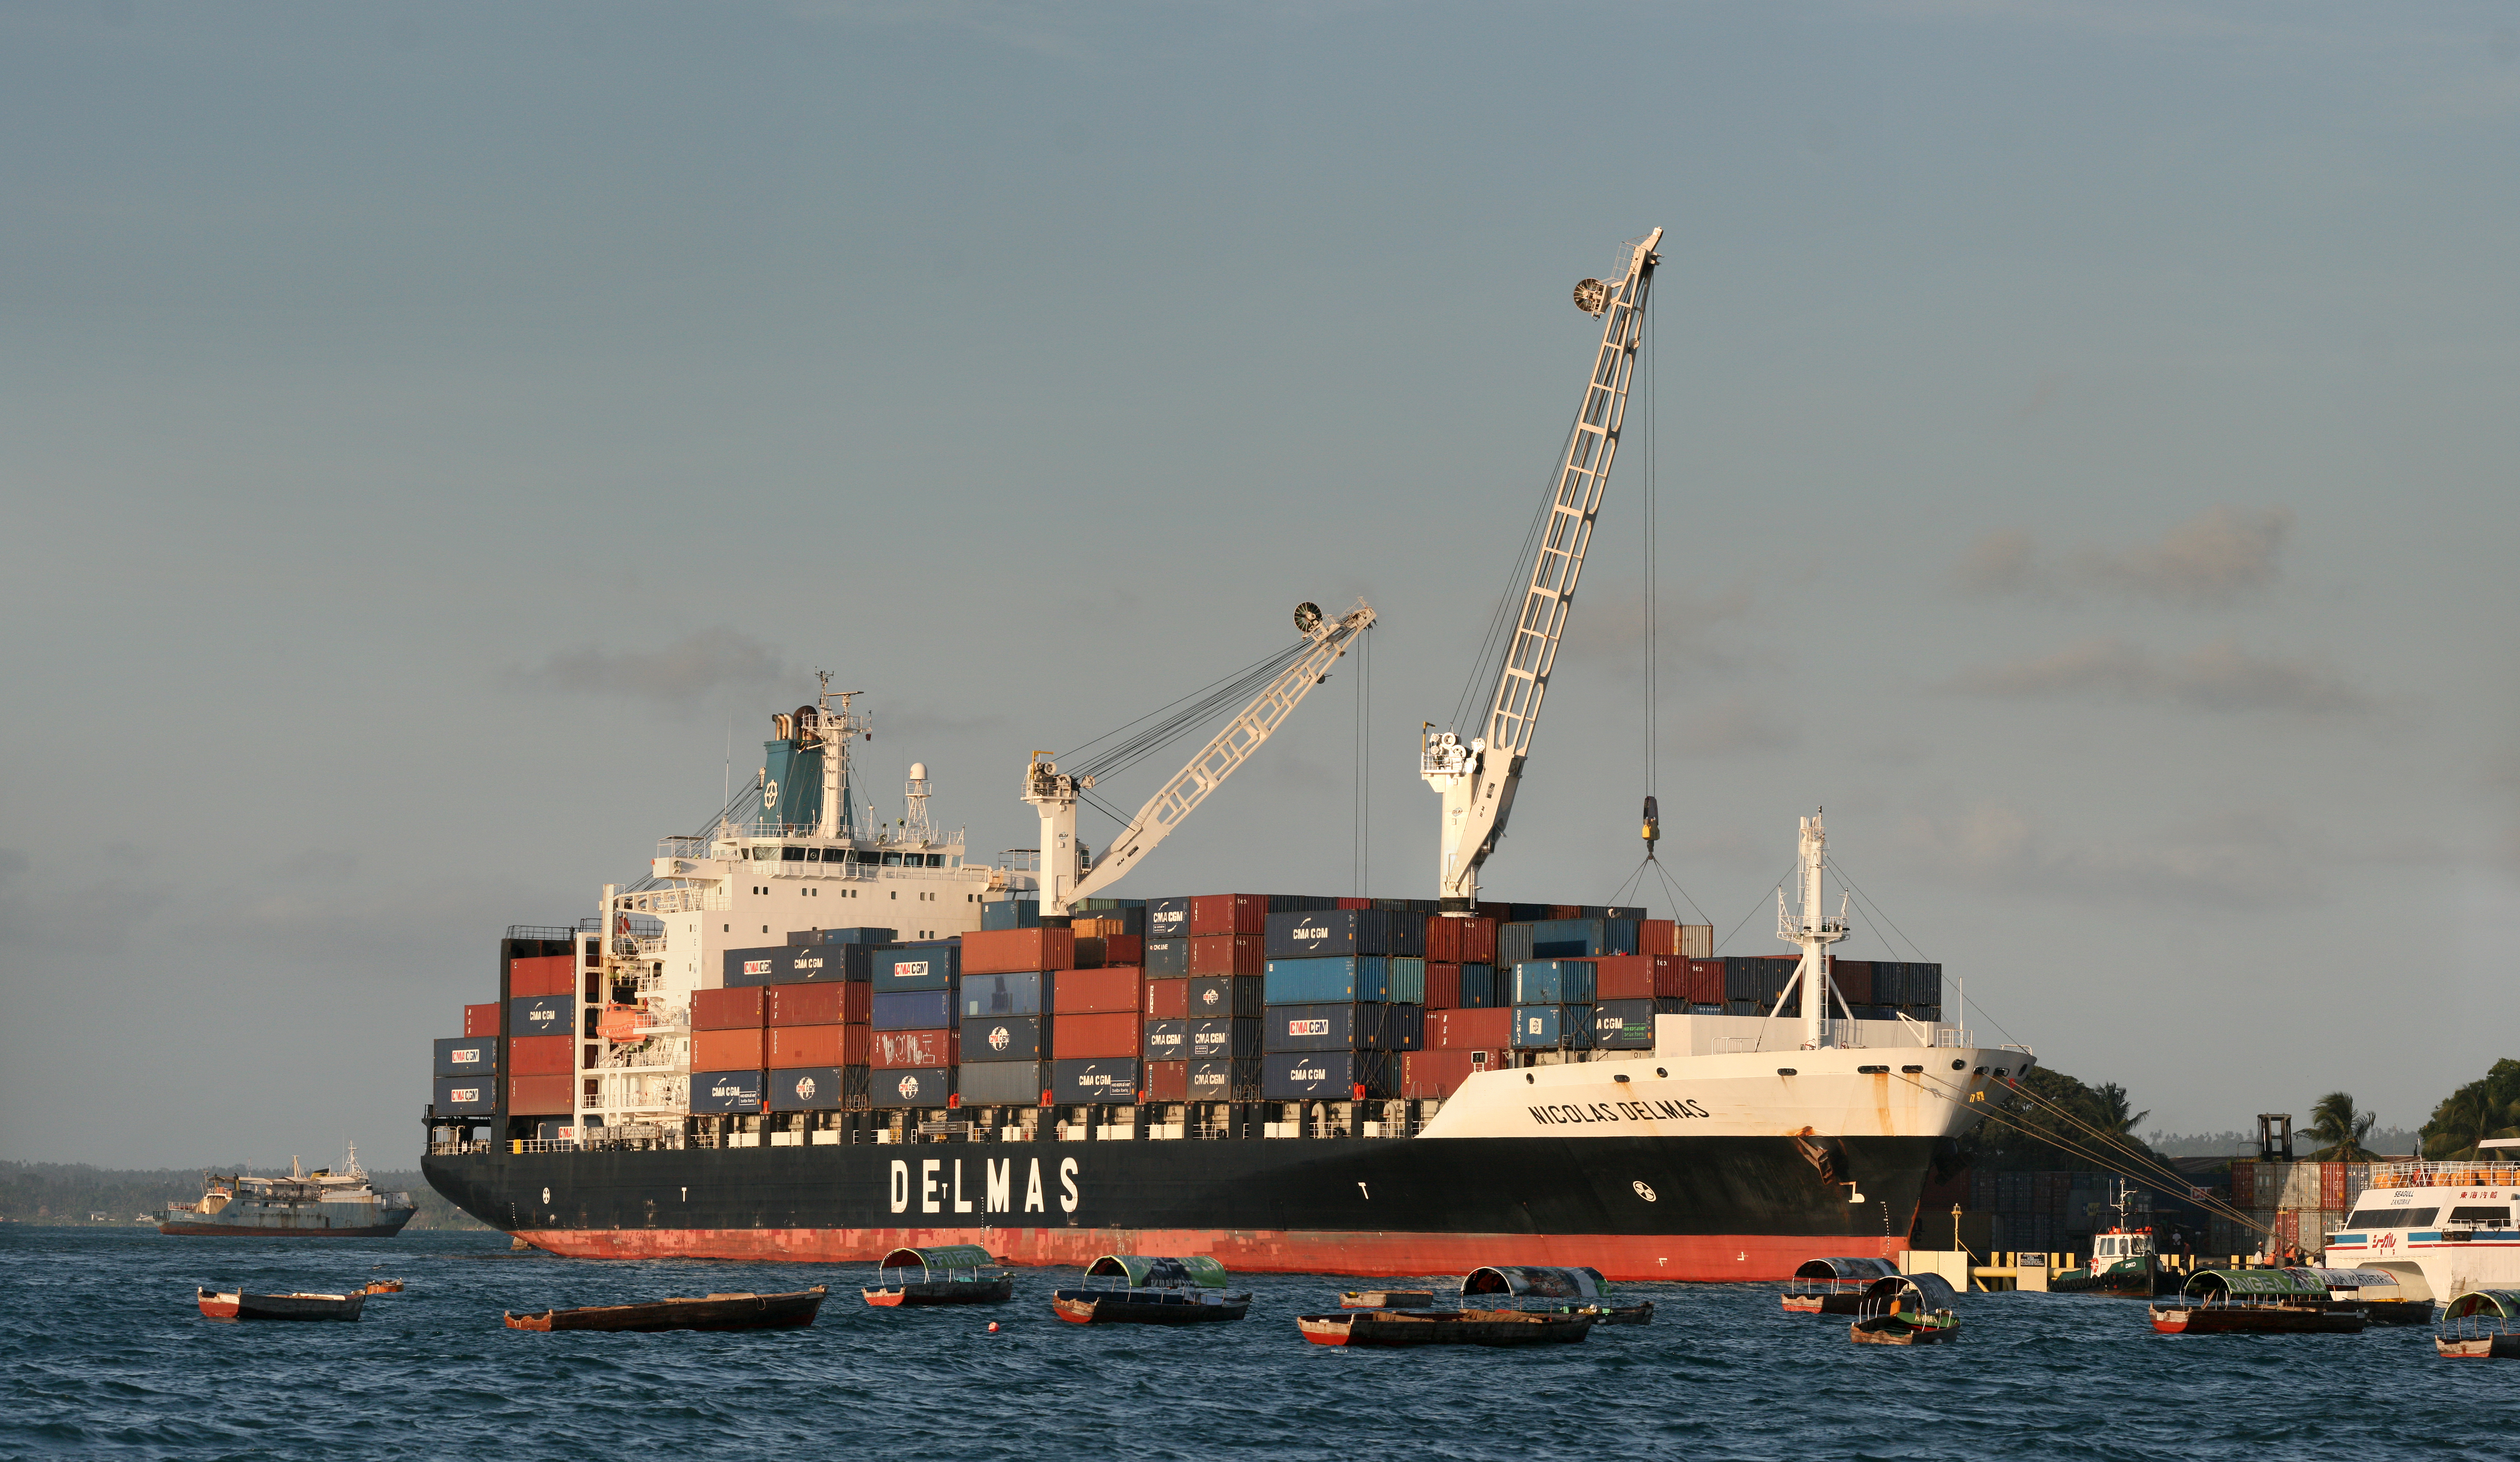 Container vessel photo